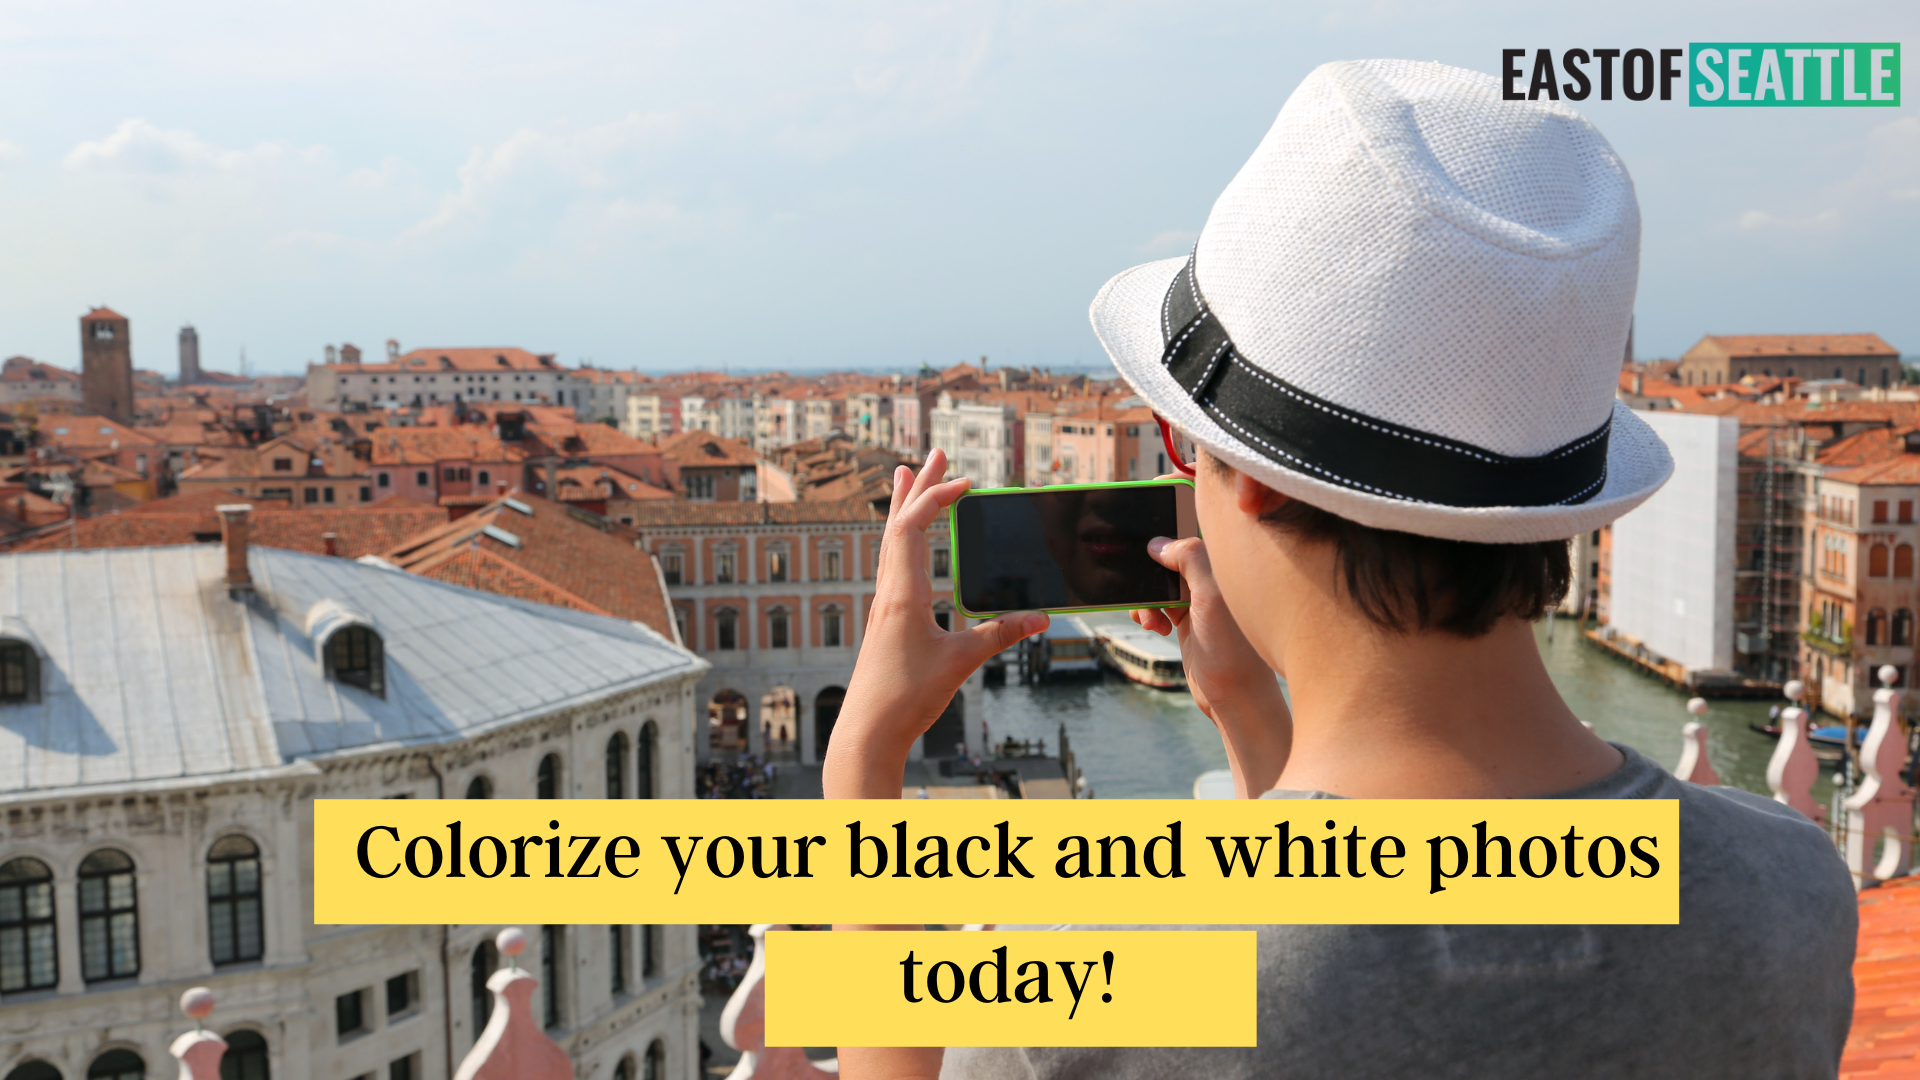 Colorize your black and white photos today!